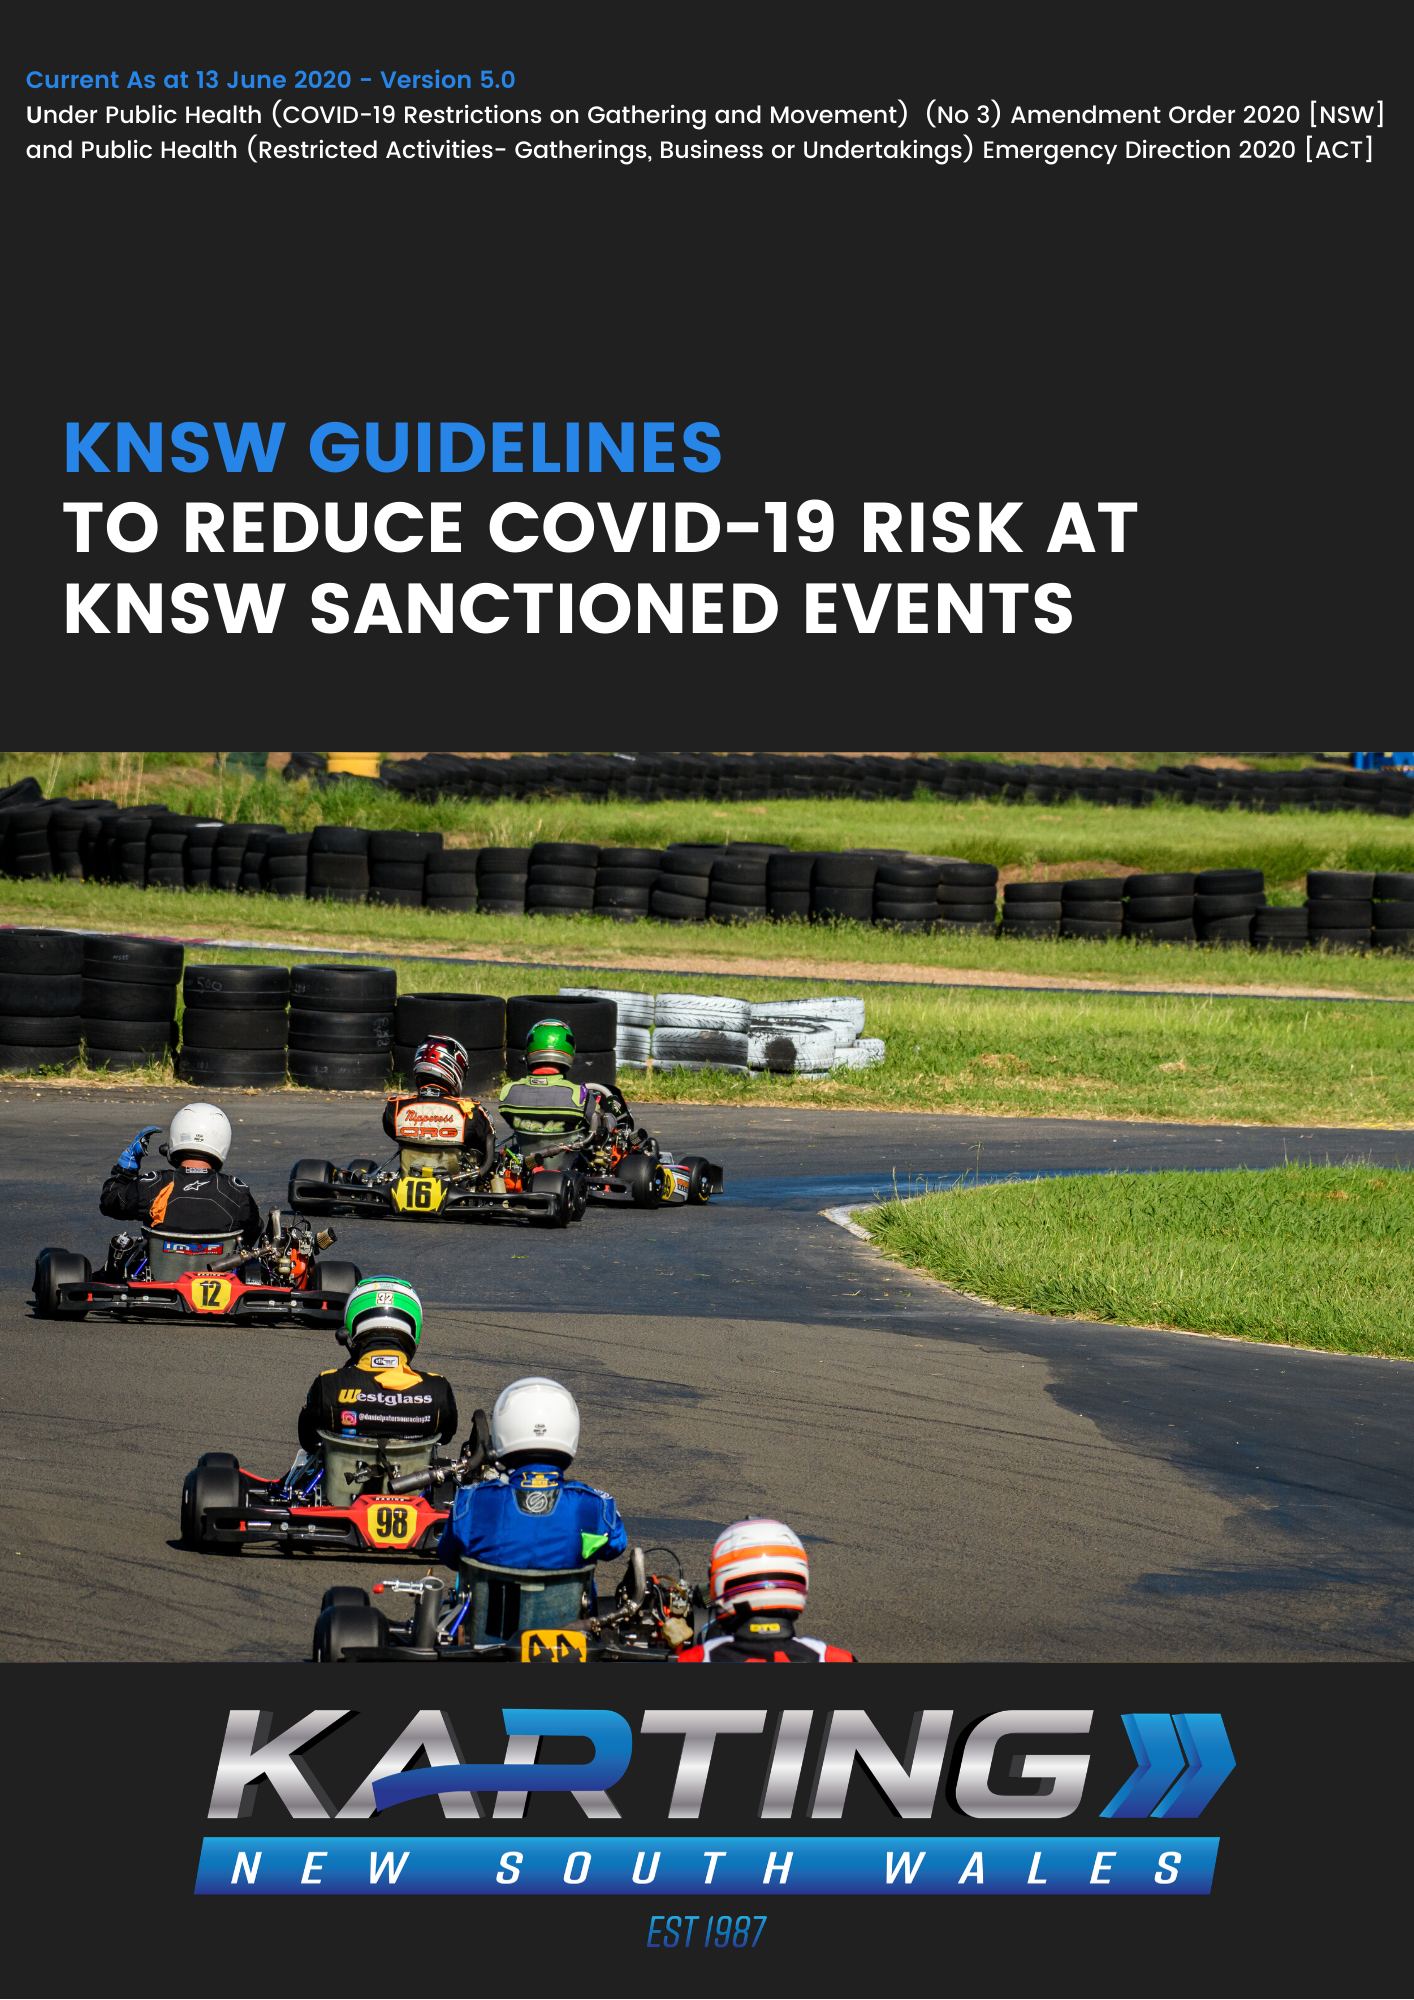 KNSW Guidelines - 13 June 2020 Cover FINAL